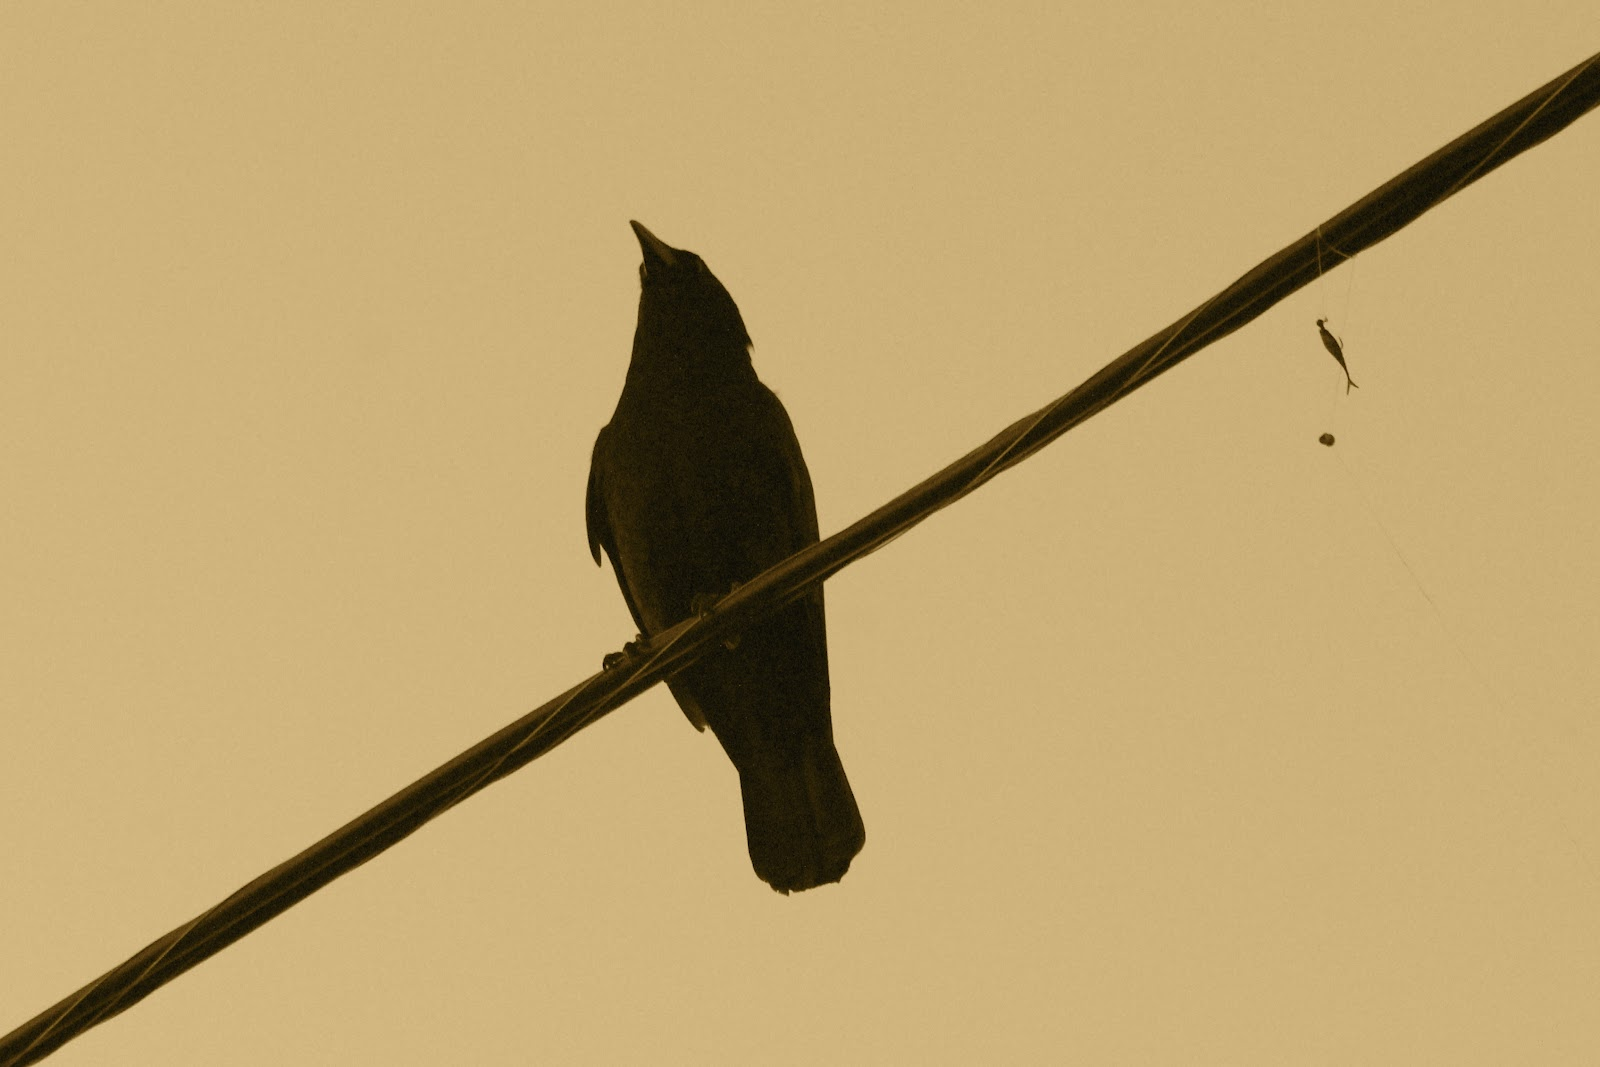 Bird on a wire template - photo#16